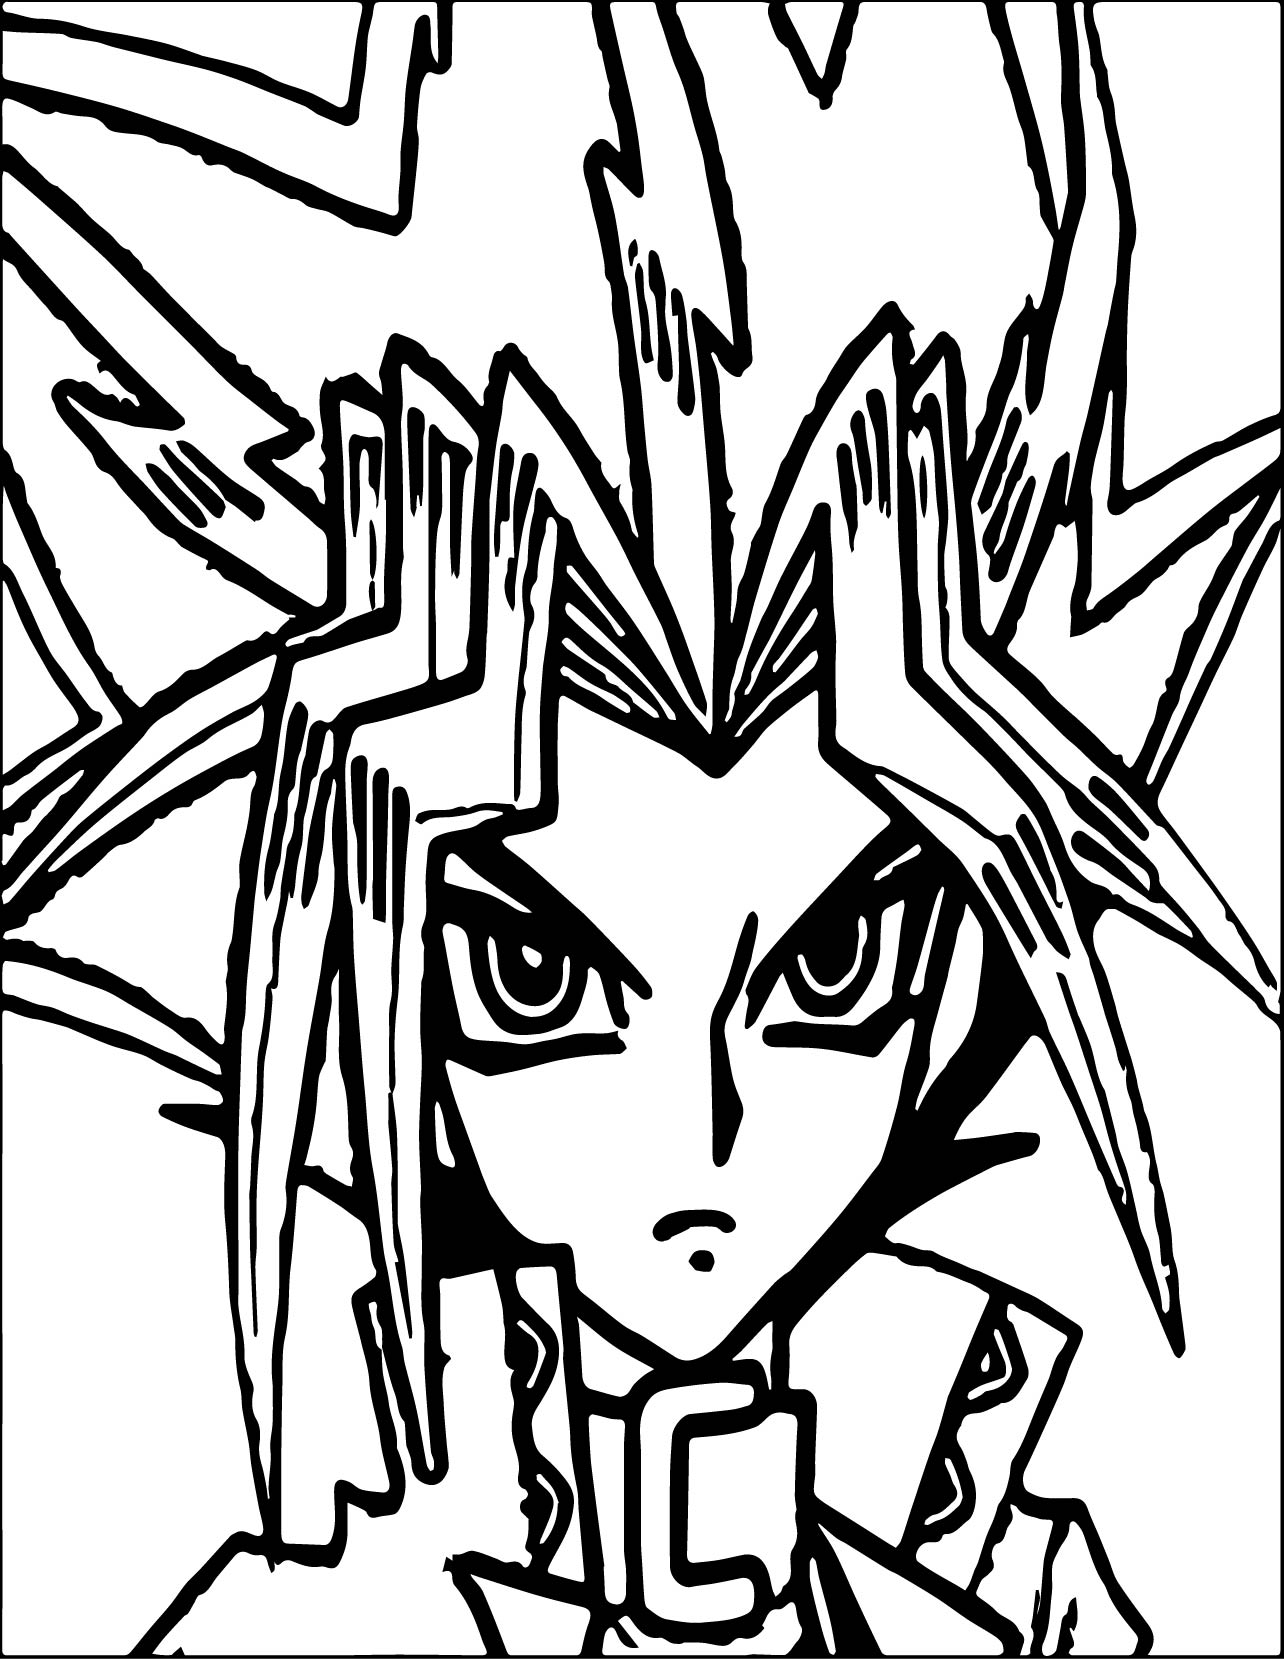 Free coloring pages yugioh - Yugioh Coloring Pages